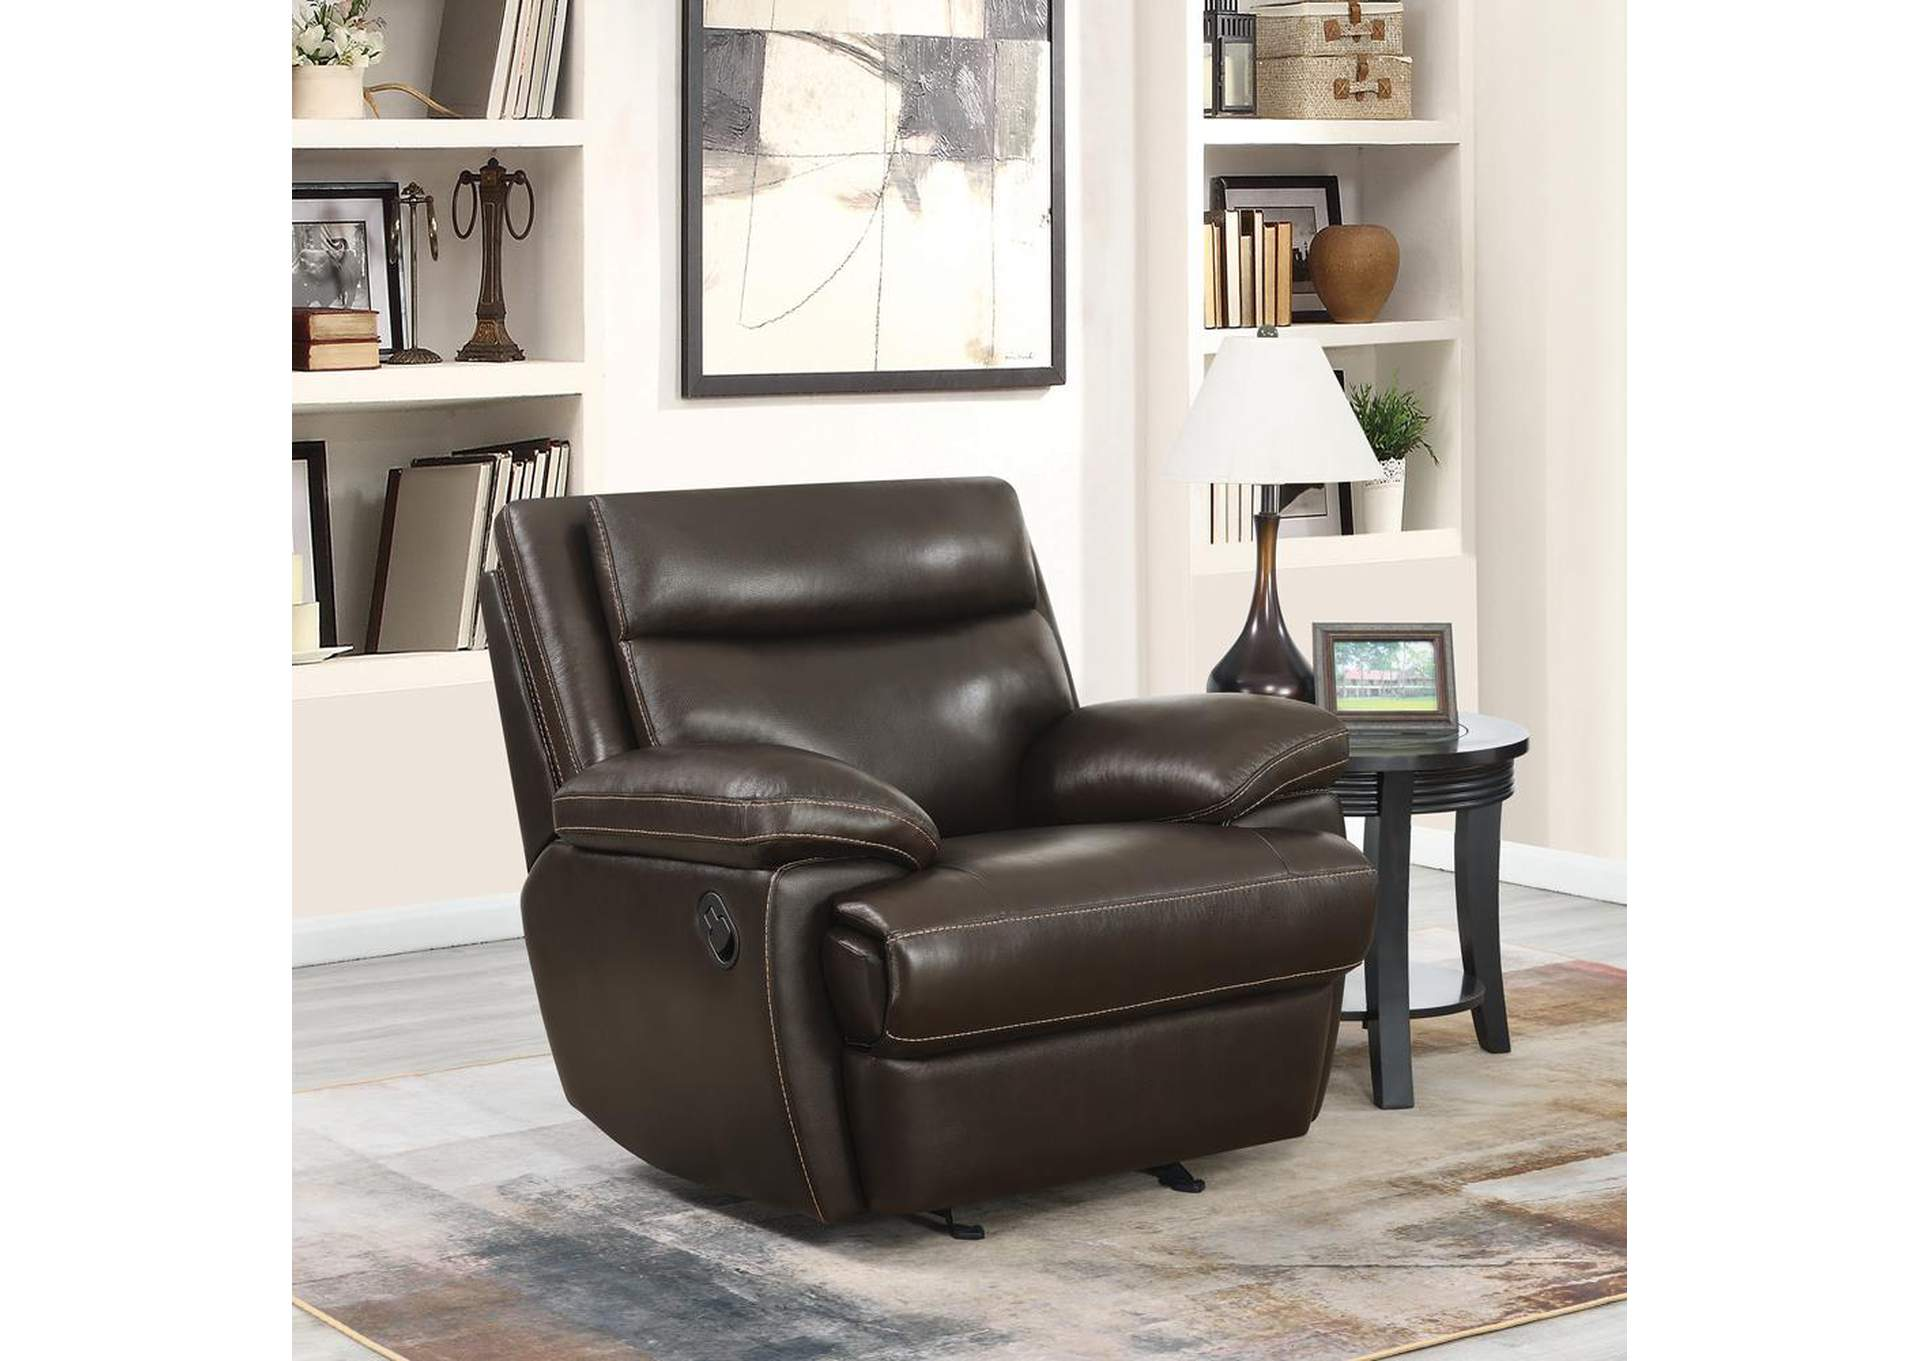 Best Home Furniture Outlet Vineland Nj Brown Power Glider Recliner